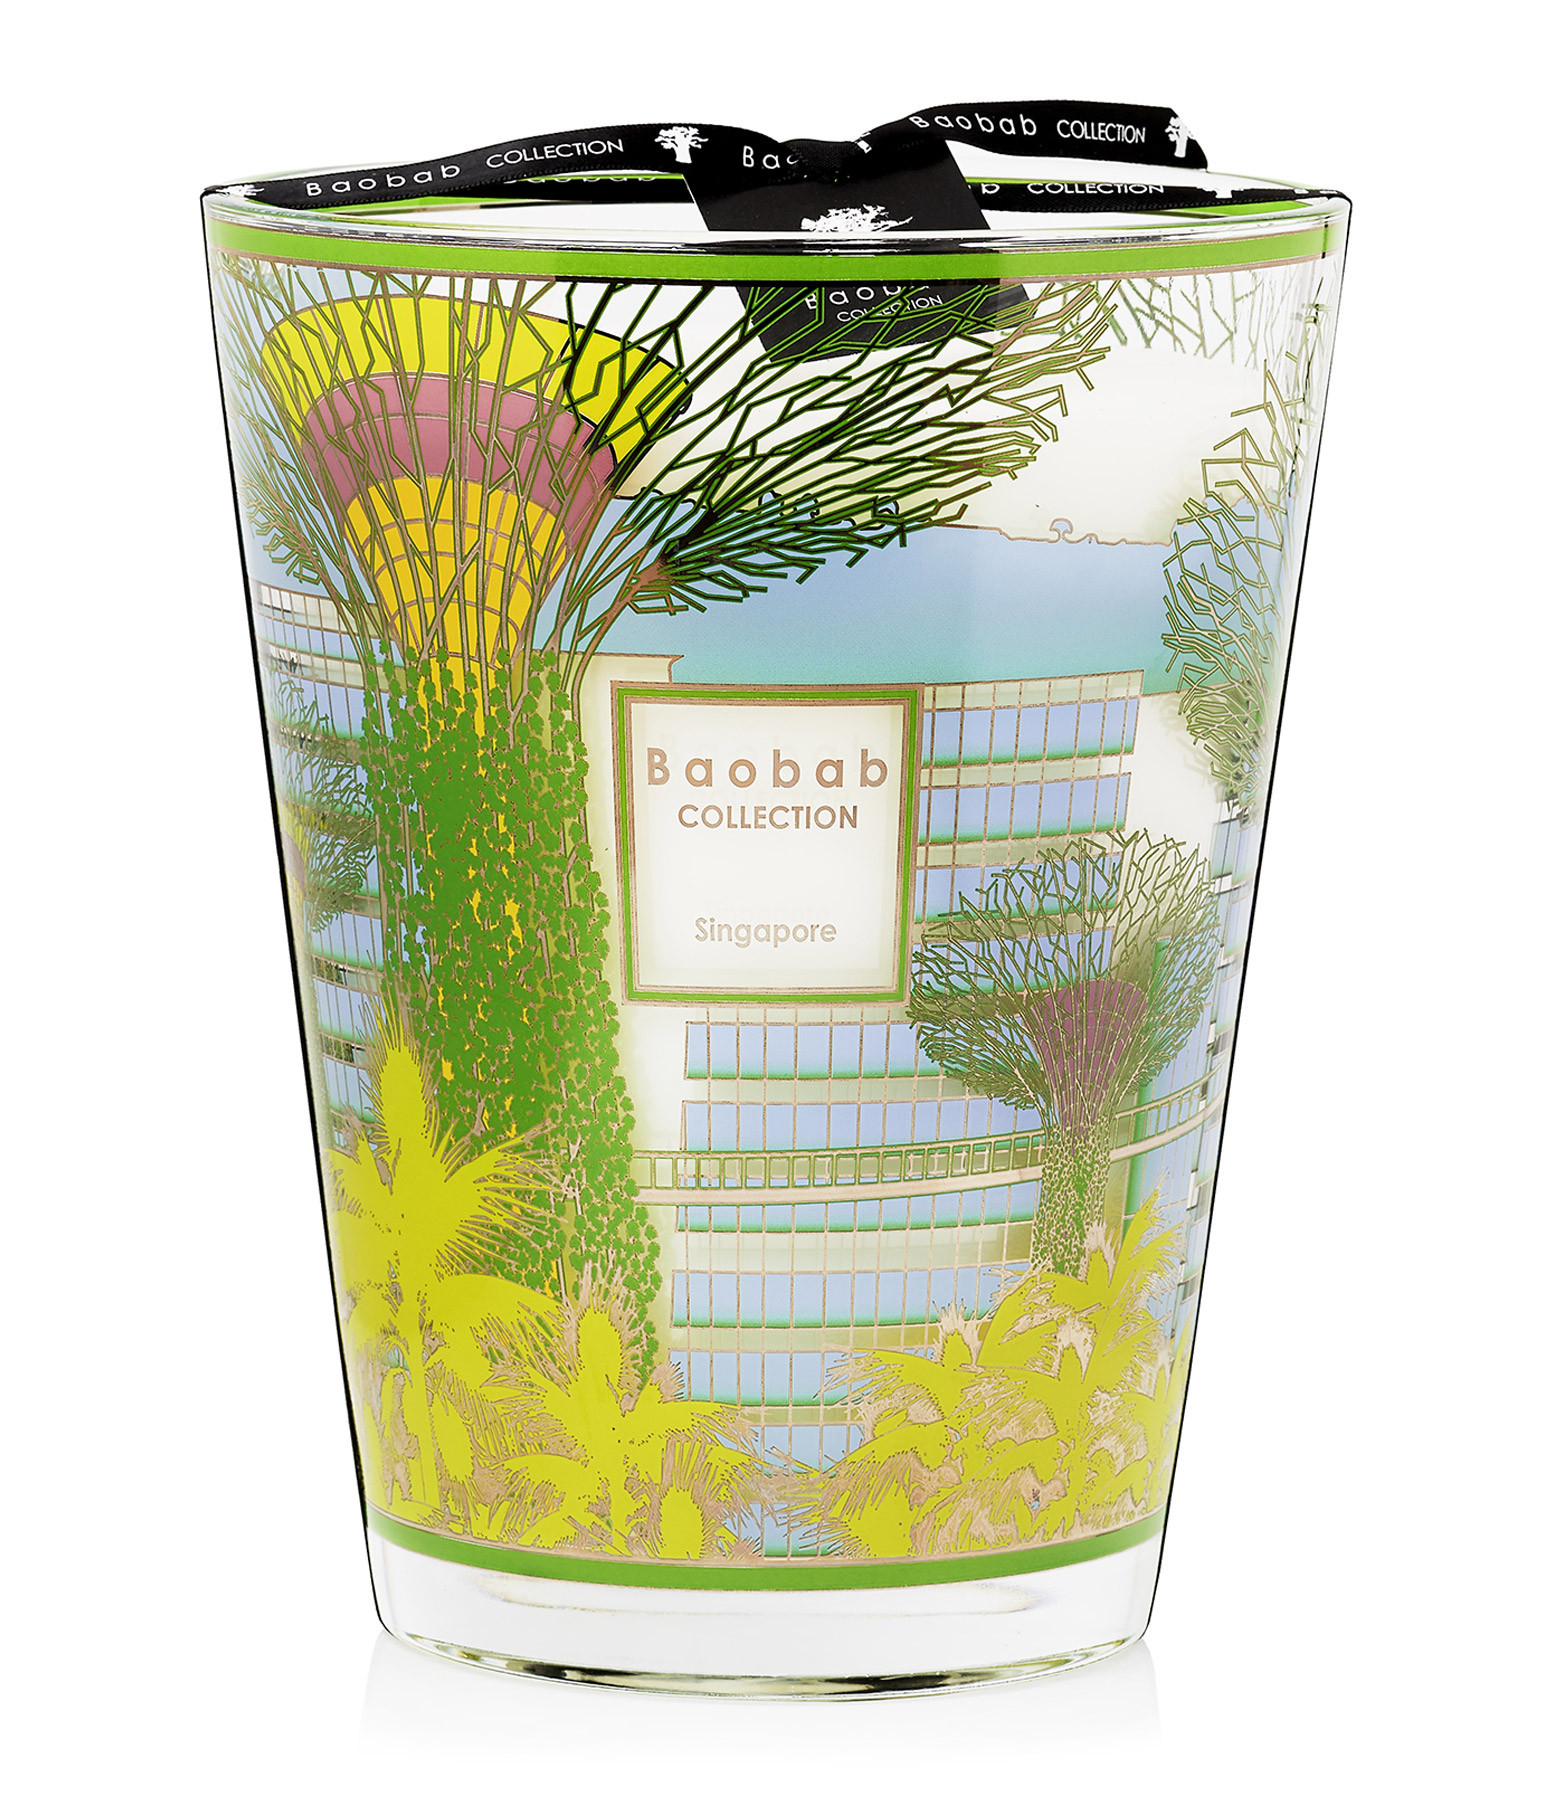 BAOBAB COLLECTION - Bougie Max 24 Cities Singapore